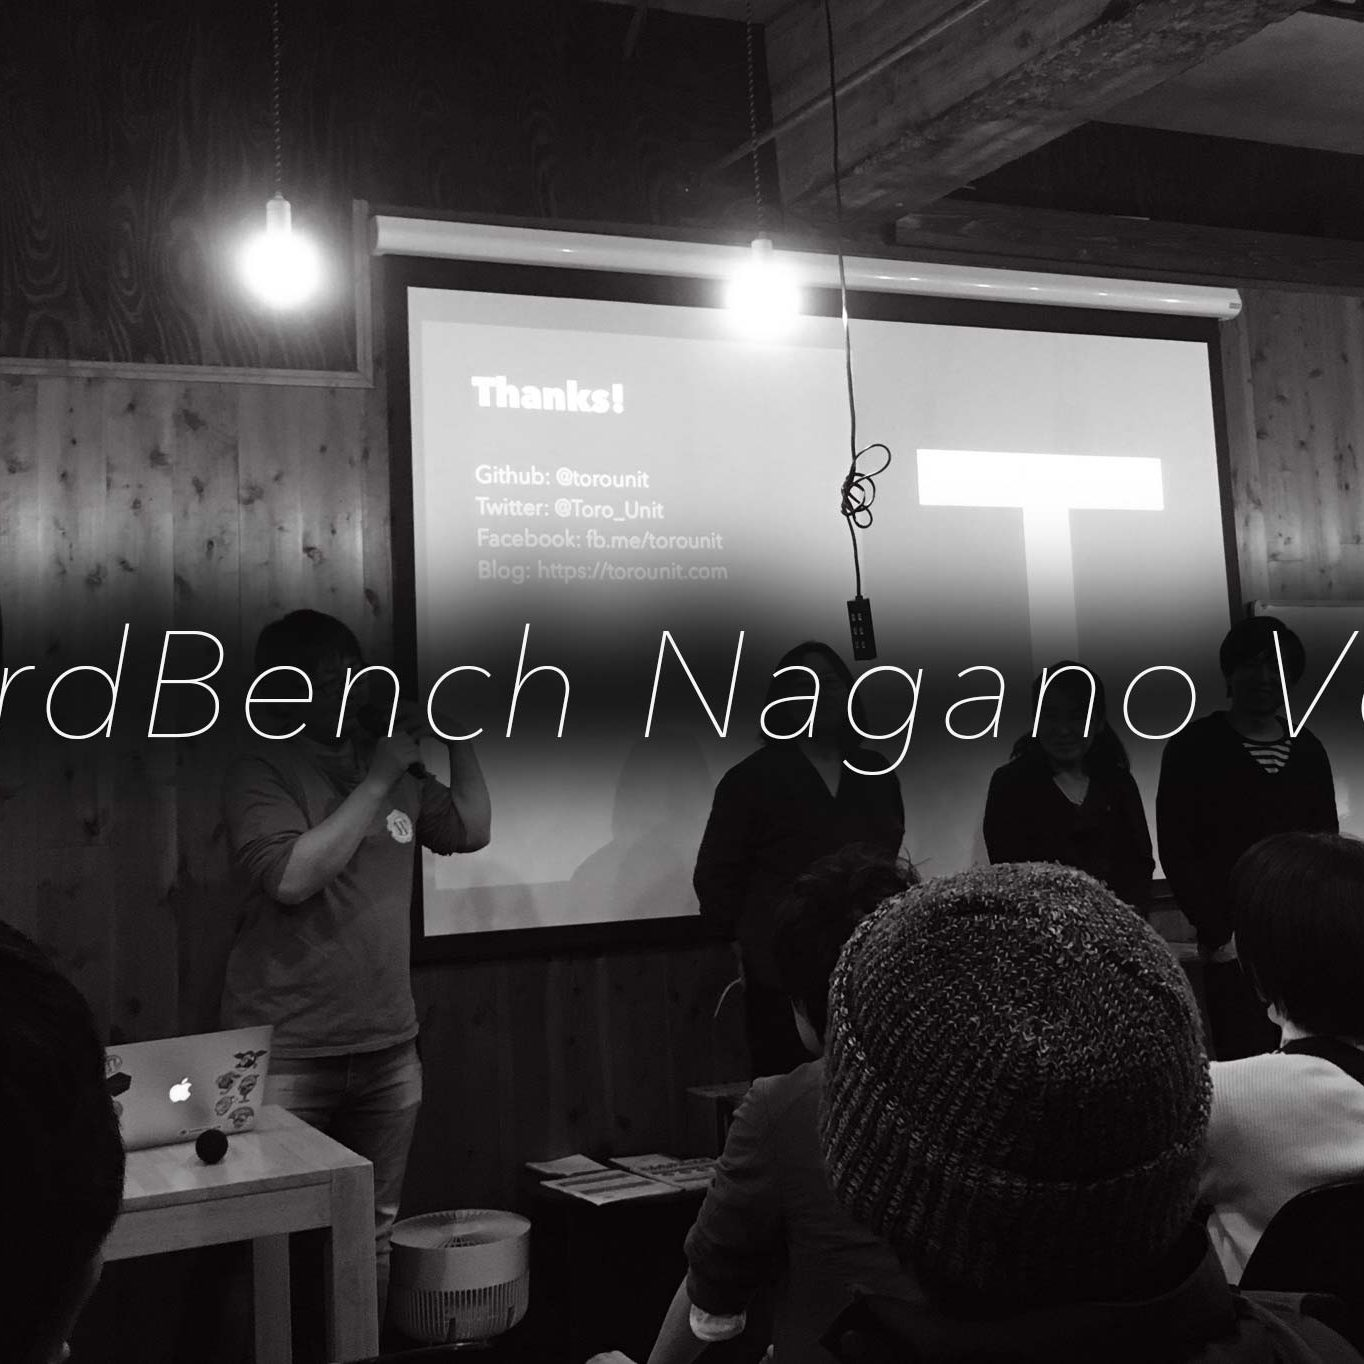 catch-wordbench-nagano-v6